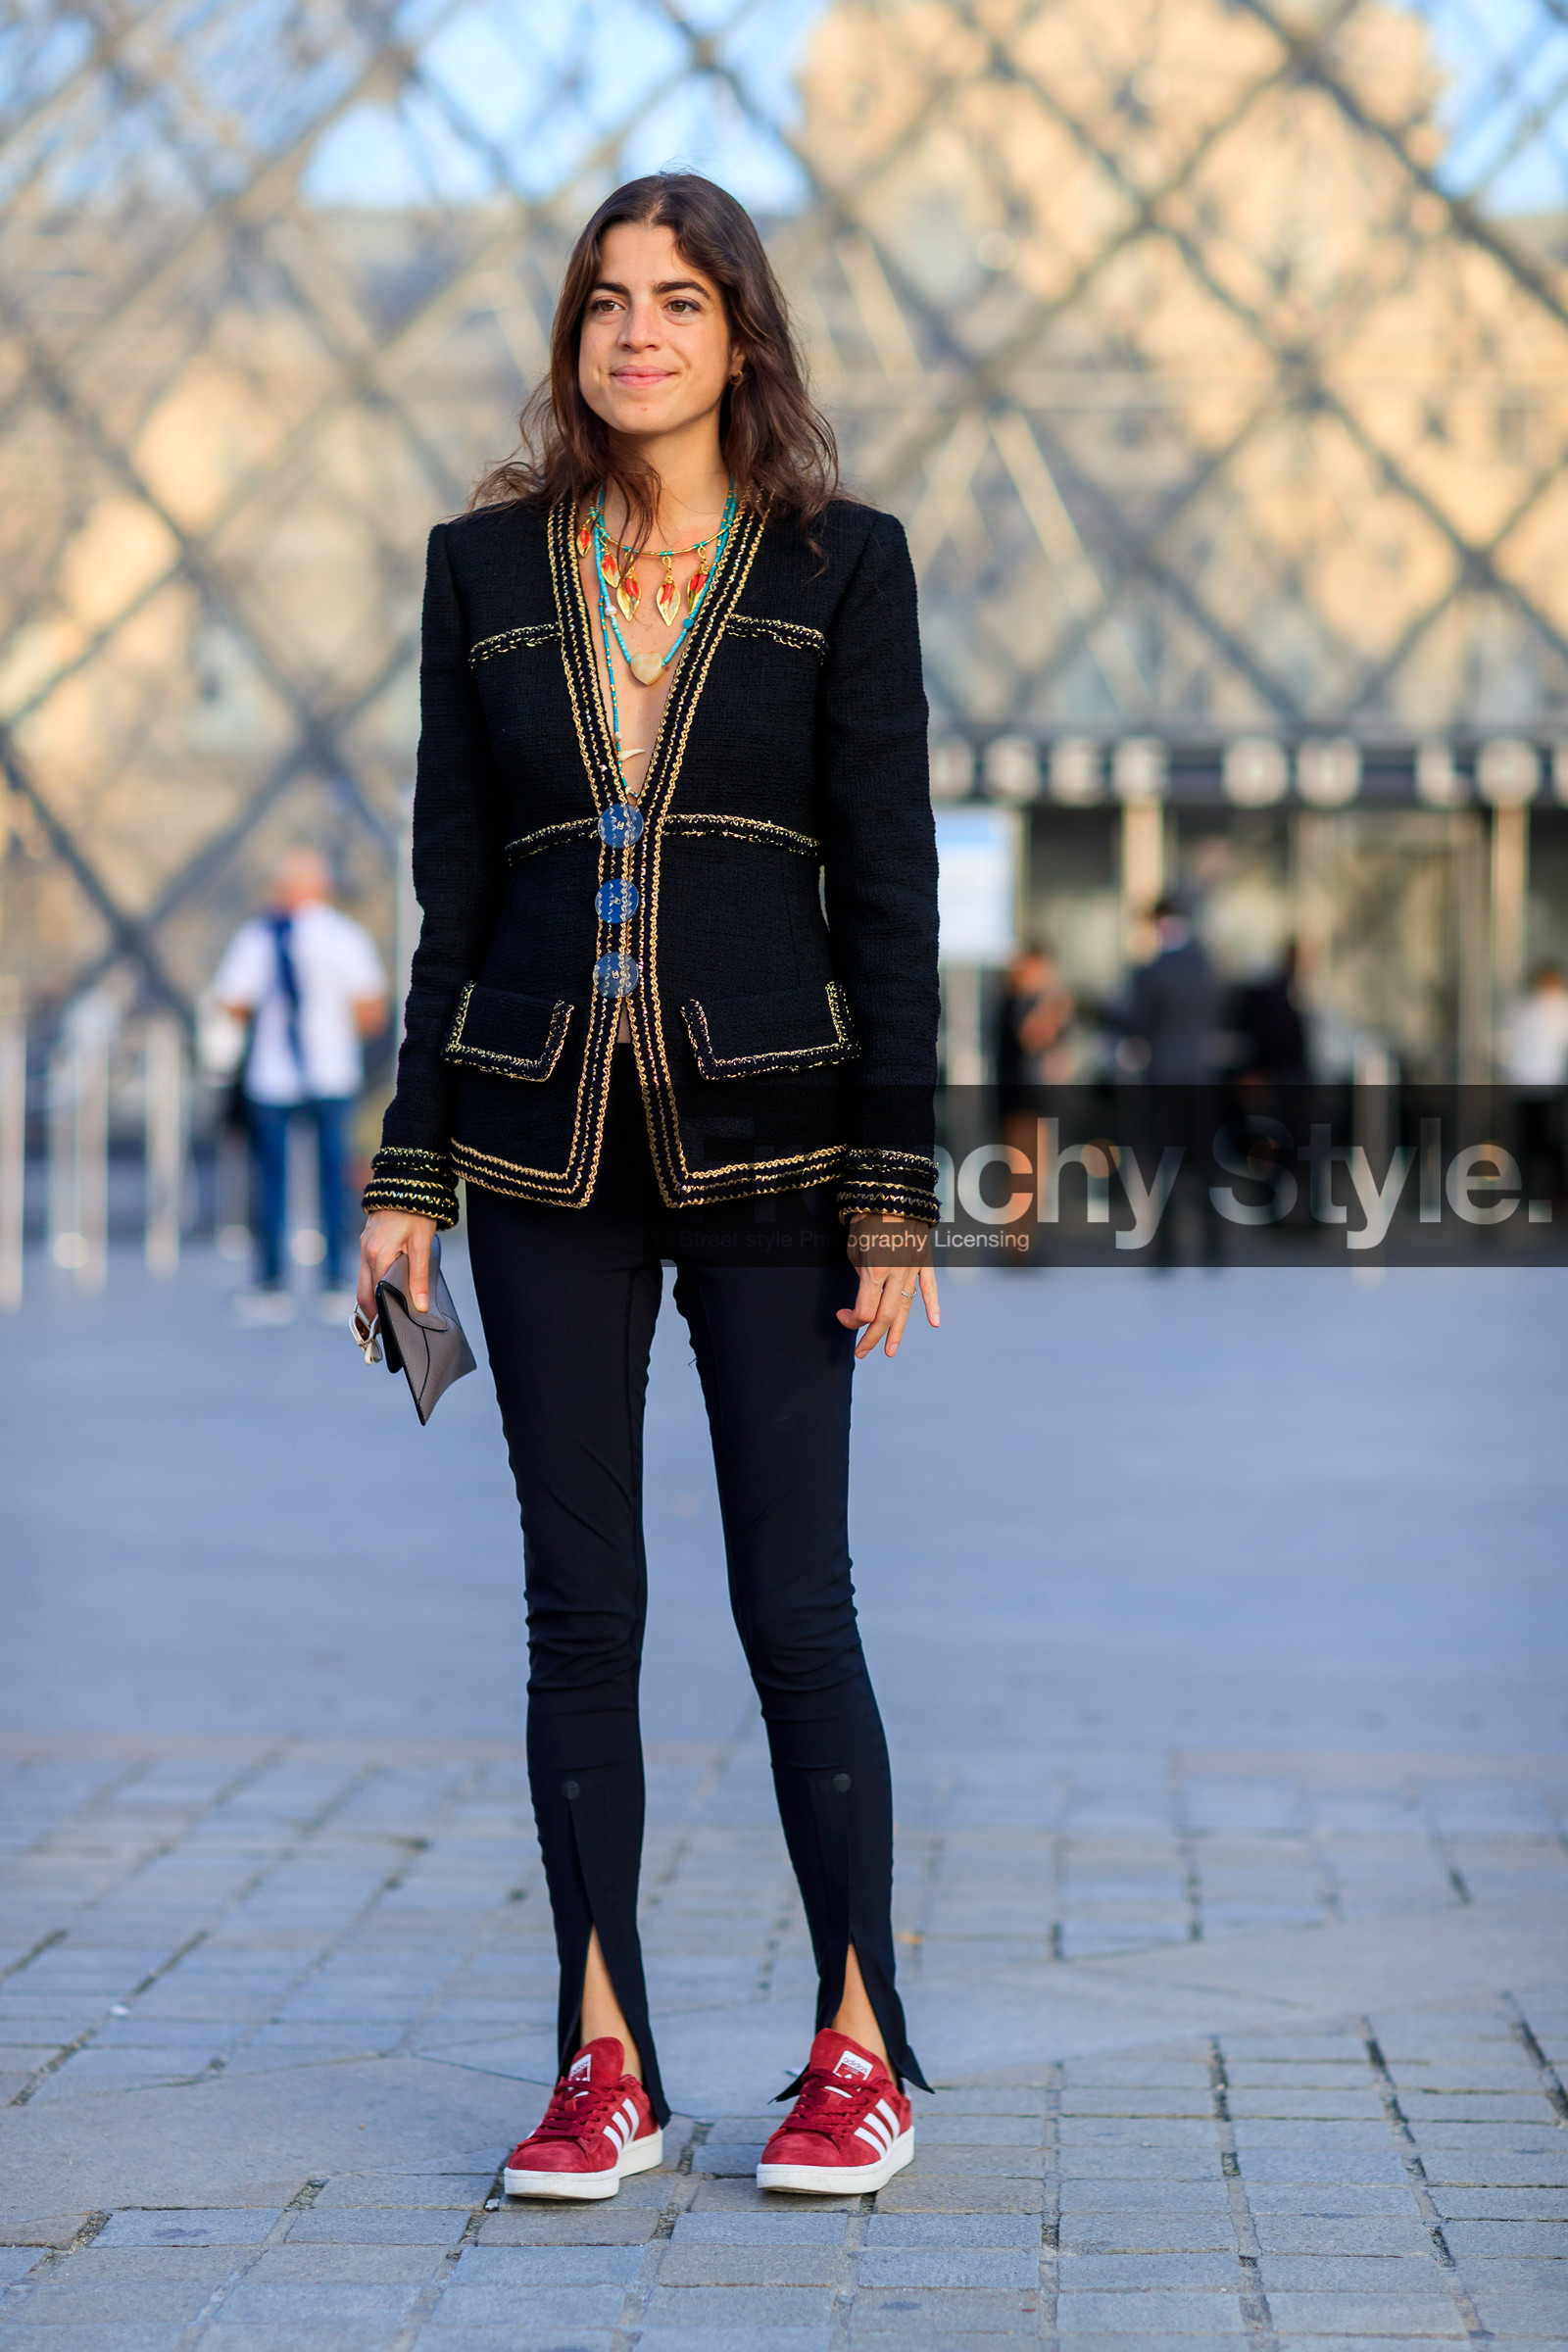 adidas, black jacket, black pants, blazer, fashion week, frenchystyle, full length, FW, graphic jacket, jonathan paciullo, leather shoes, necklace, PARIS, PFW, printed jacket, red sneakers, SPRING SUMMER 2018, SS 18, street style, trousers, tweed jacket, vertical, leandra medine